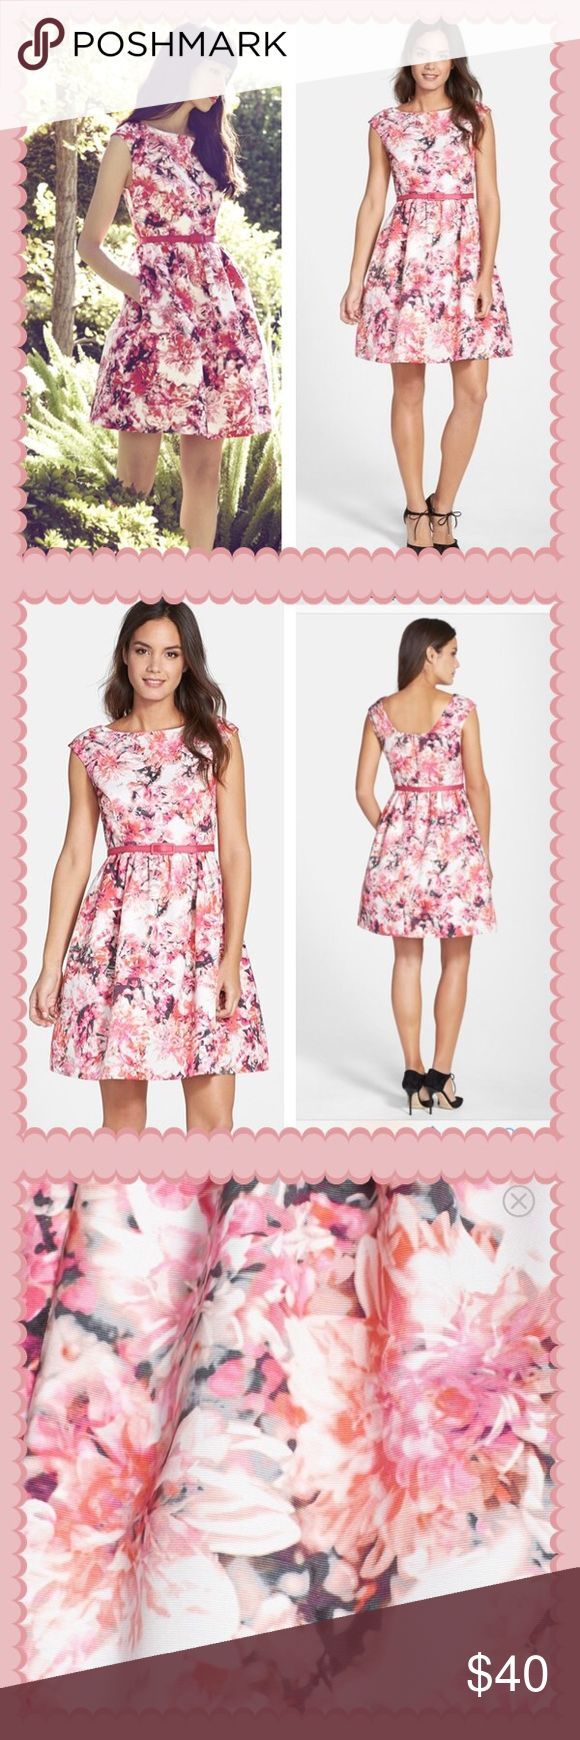 Eliza J Floral Fit & Flare Dress Soft pinks course throughout the hazy floral print and grosgrain-covered belt coordinating an ultrafemme cap-sleeve dress. Back zip closure. Fully lined. Front pockets. 100% polyester. Dry clean. By Eliza J; imported. Excellent condition.                                                   20% off bundles! Eliza J Dresses